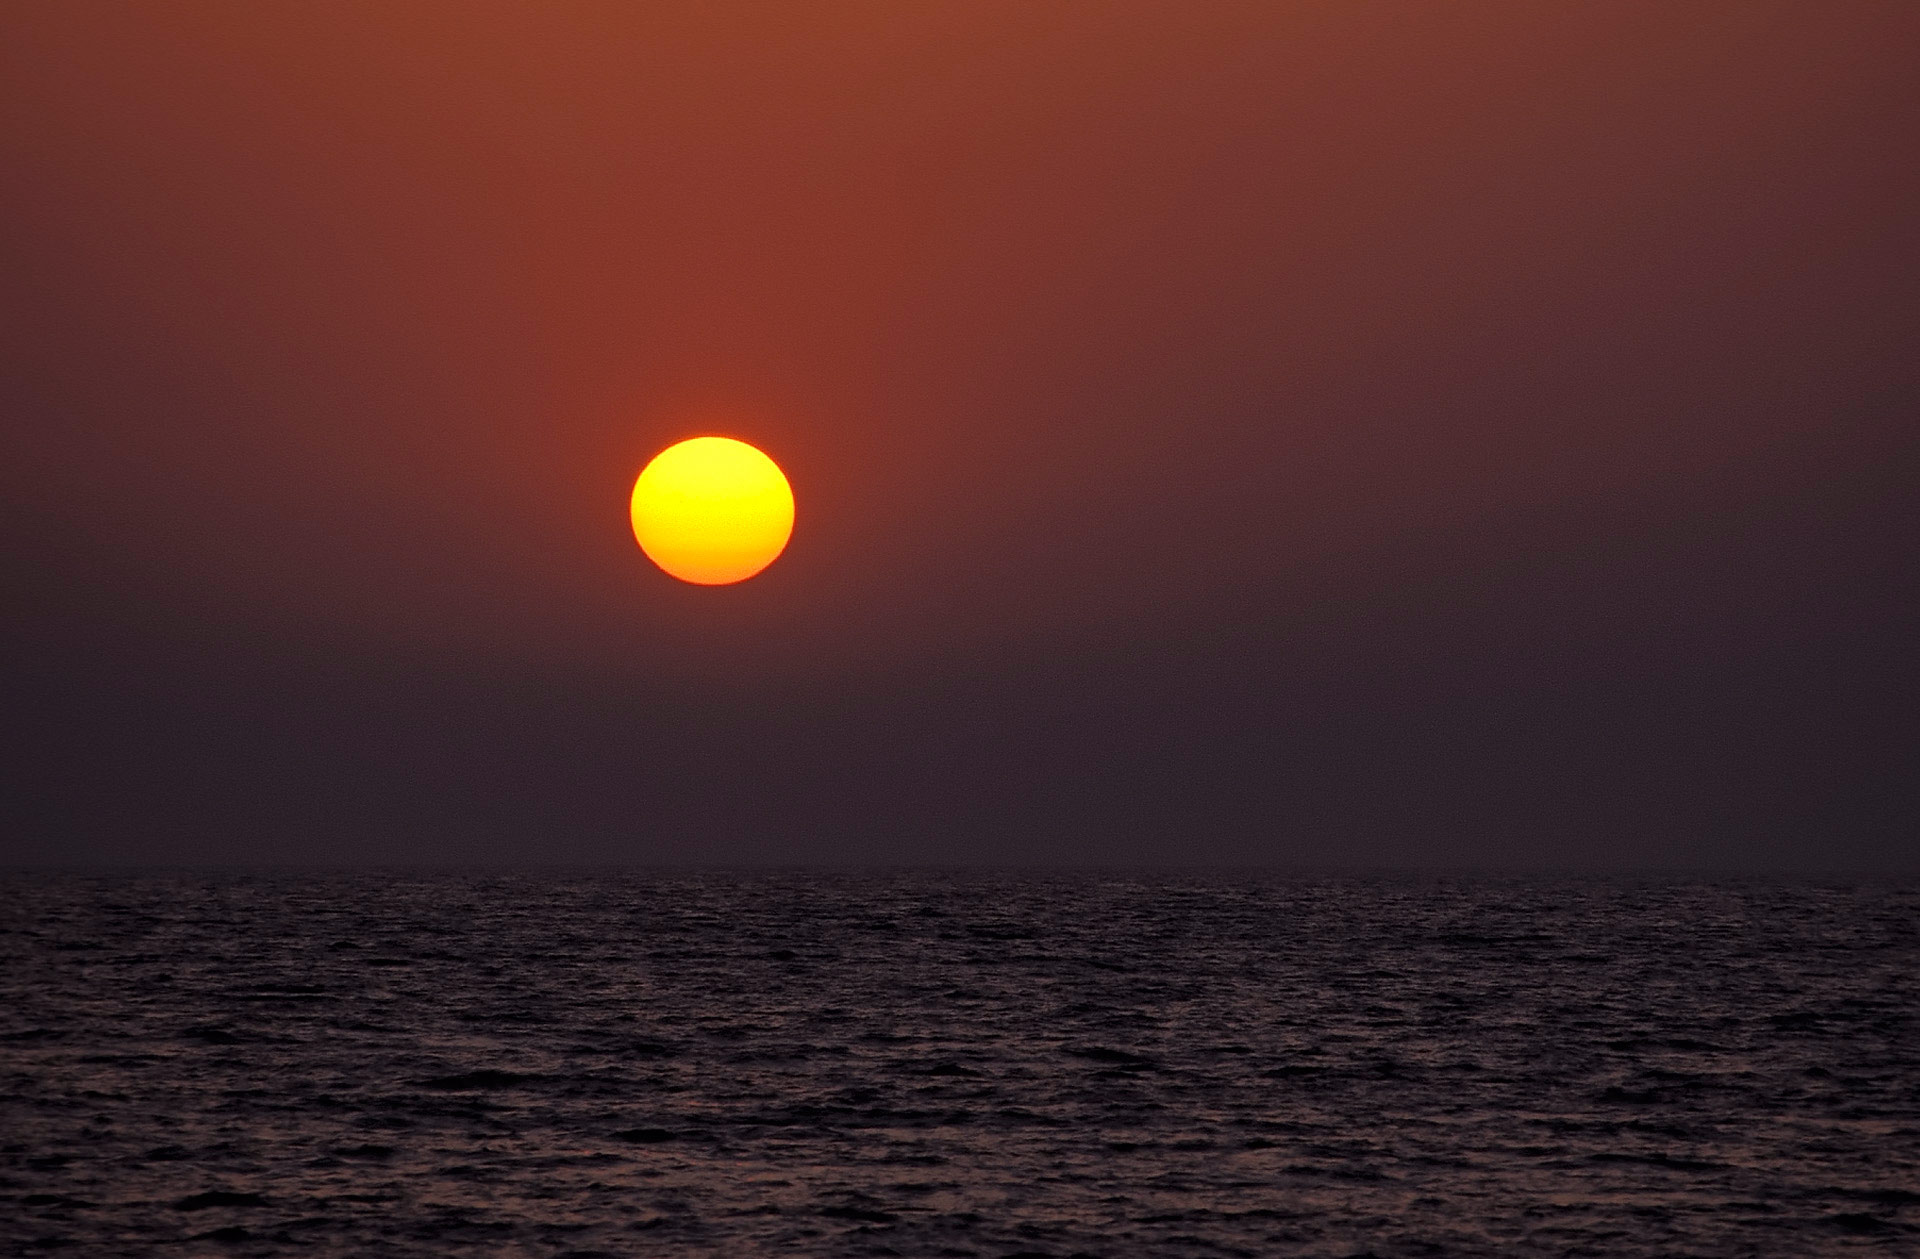 Sunset in the Arabian sea, Nattika Beach, Kerala, India